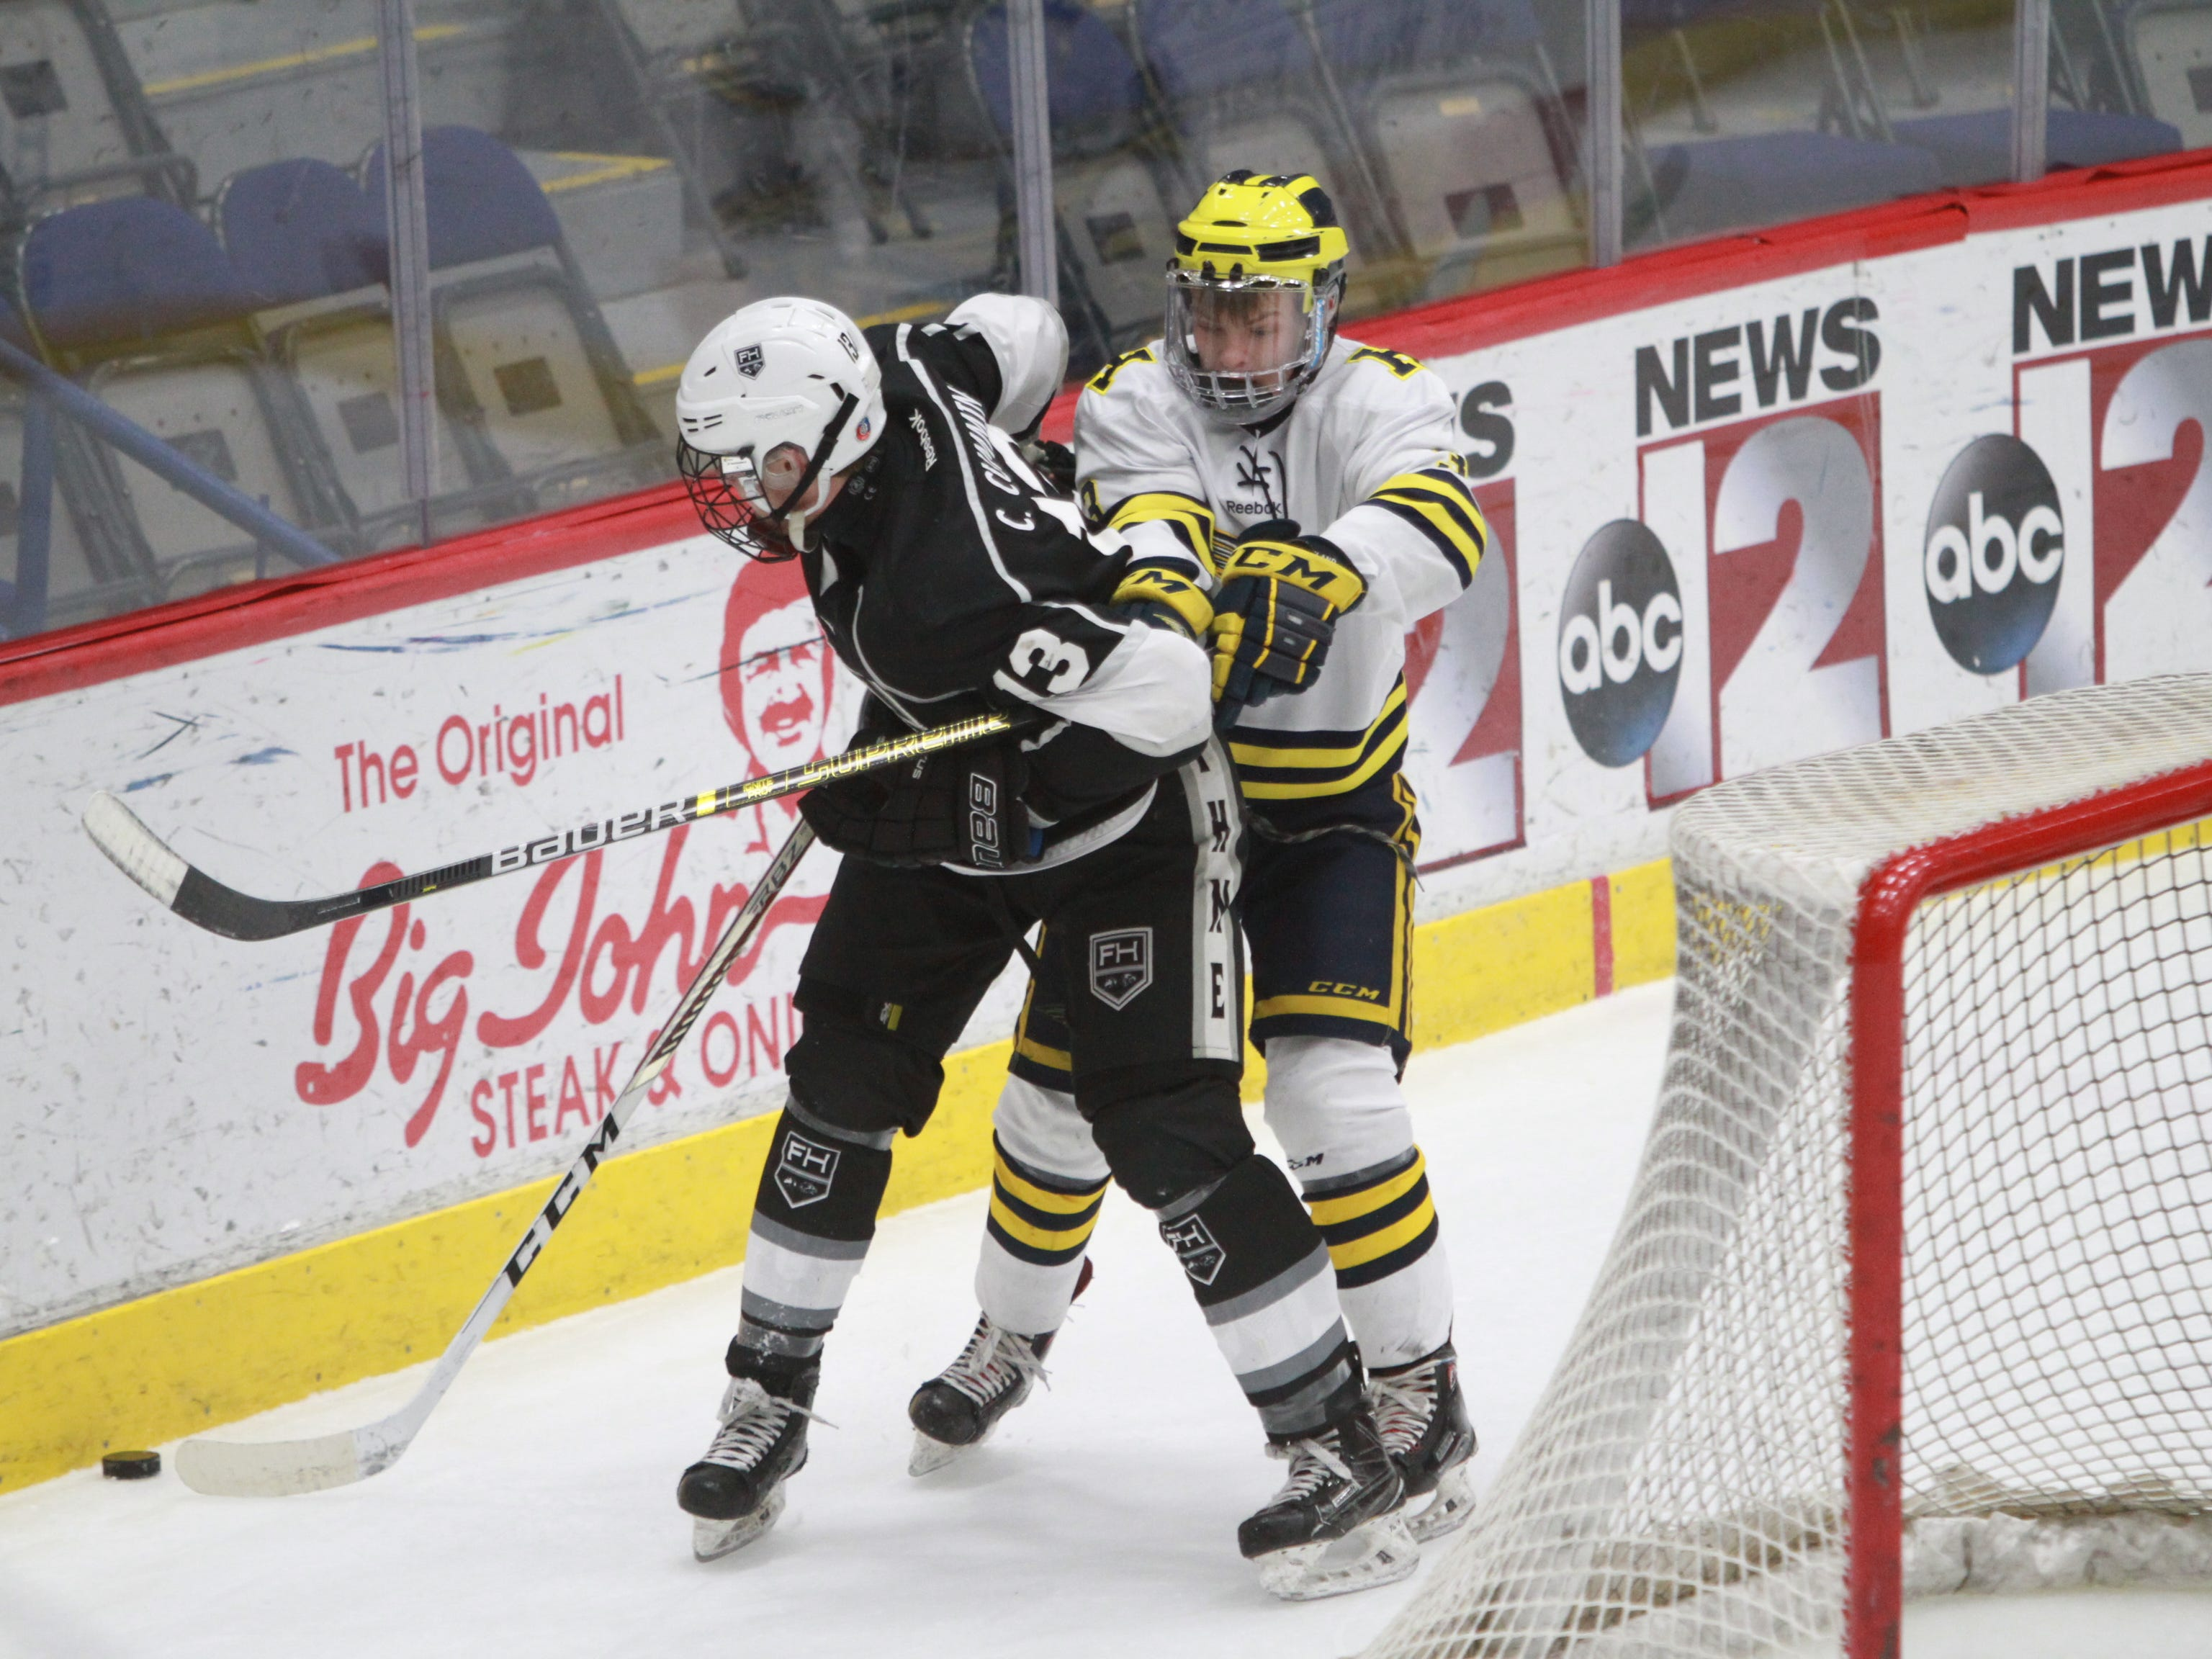 Hartland's Benny Tervo (right) battles for the puck behind the net with Forest Hills Eastern's Cure Cumming in a state hockey quarterfinal on Tuesday, March 5, 2019.